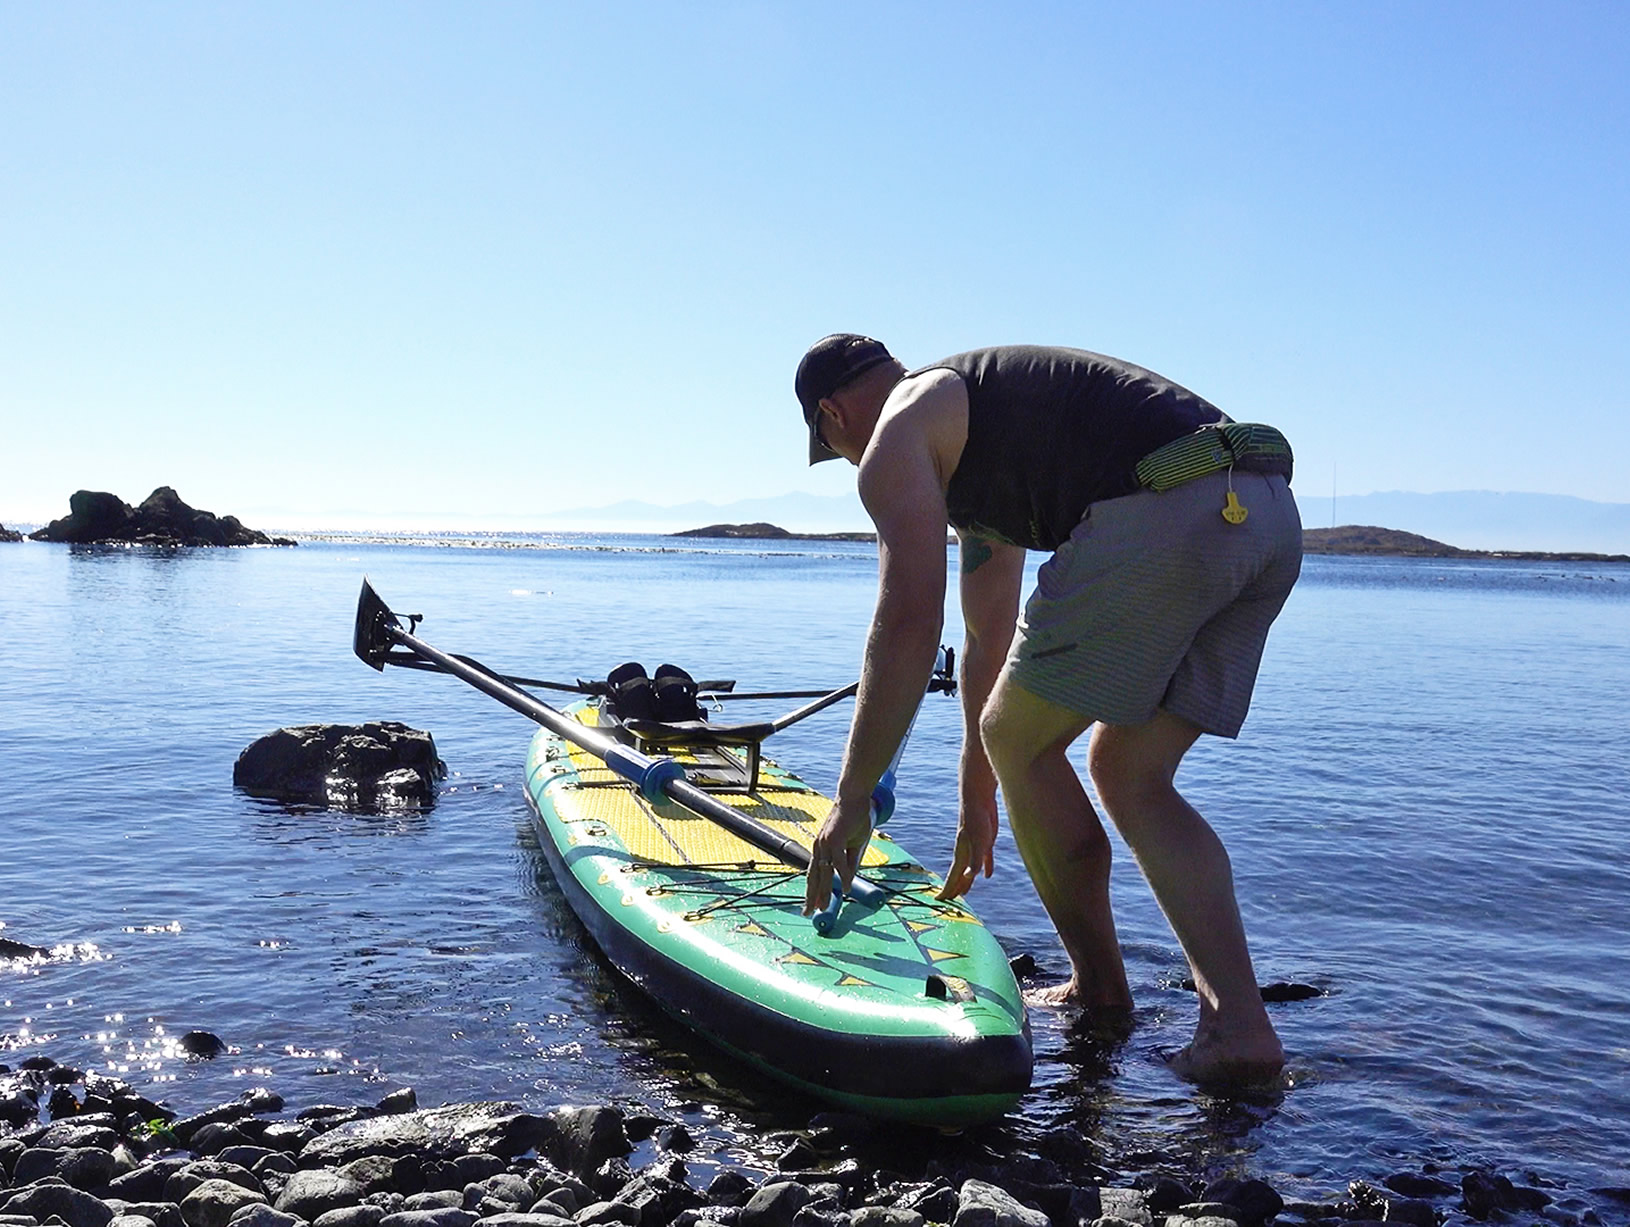 Adam Kreek Fitness, Oar Board® SUP Fit On Top Rower, Stand Up Paddle Board, Inflatable SUP, Oar Board, Whitehall Rowing & Sail